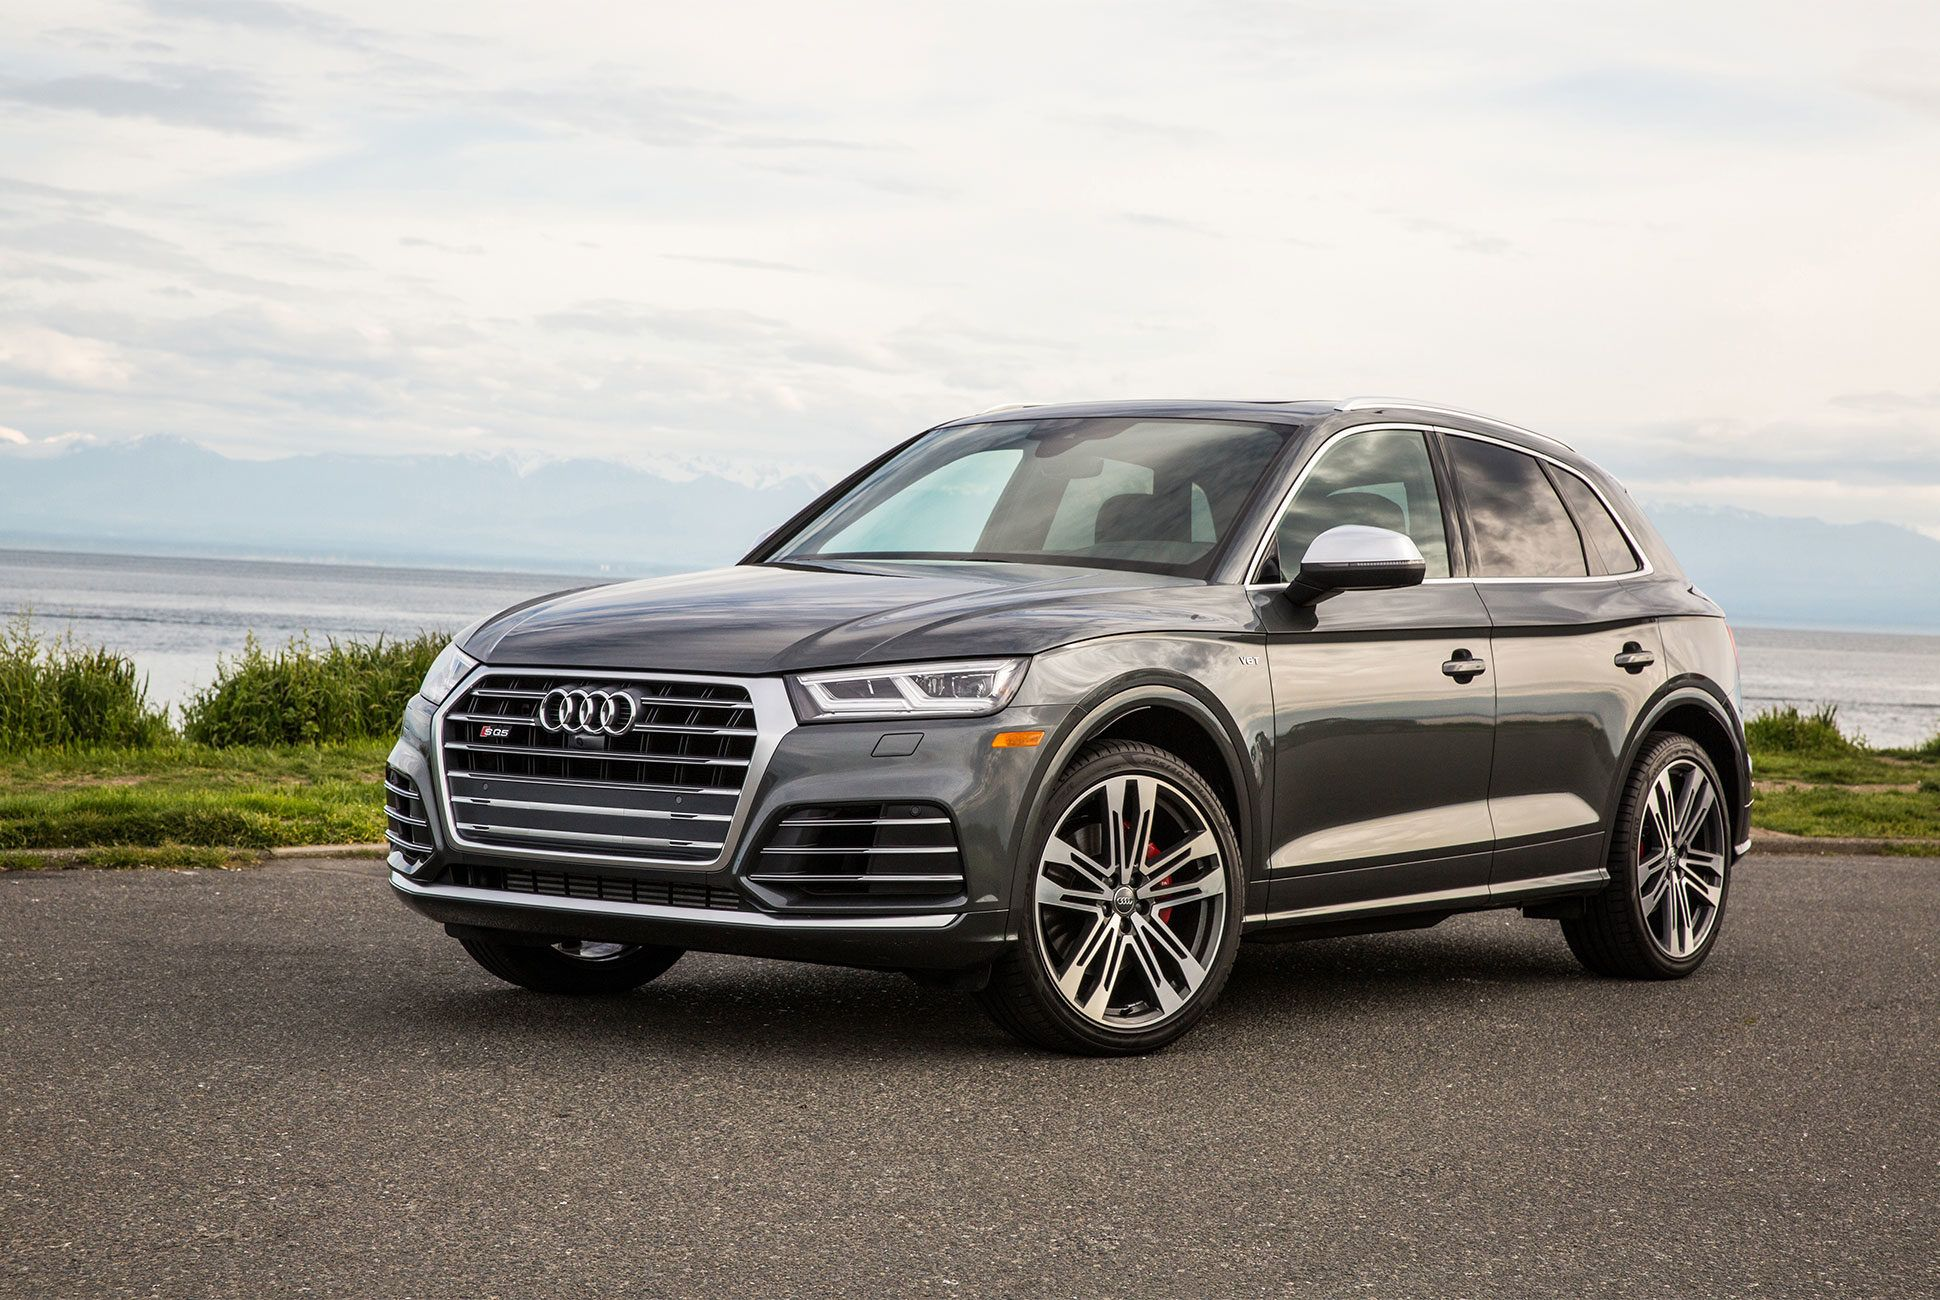 AUDI-SQ5-gear-patrol-slide-1